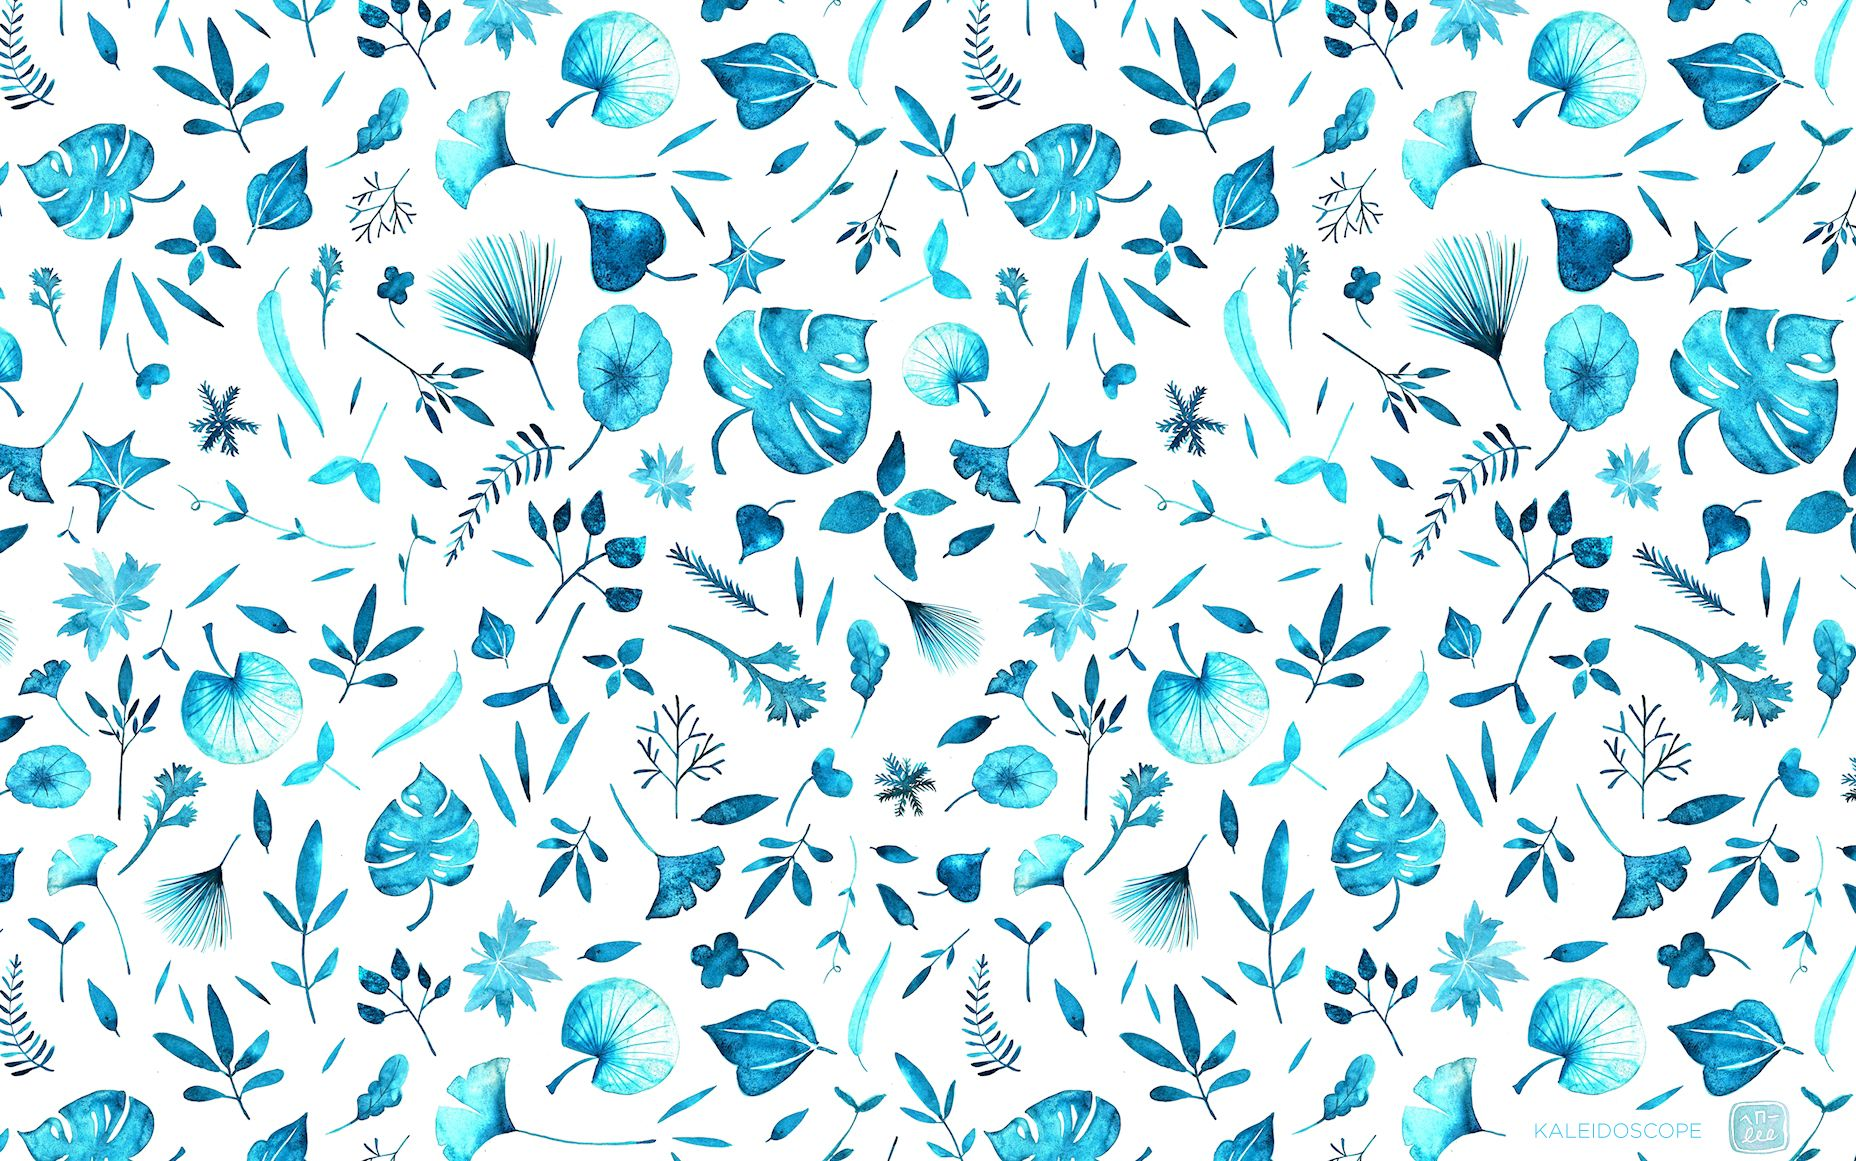 Pin by Hayley Kwok on Backgrounds Leaf wallpaper